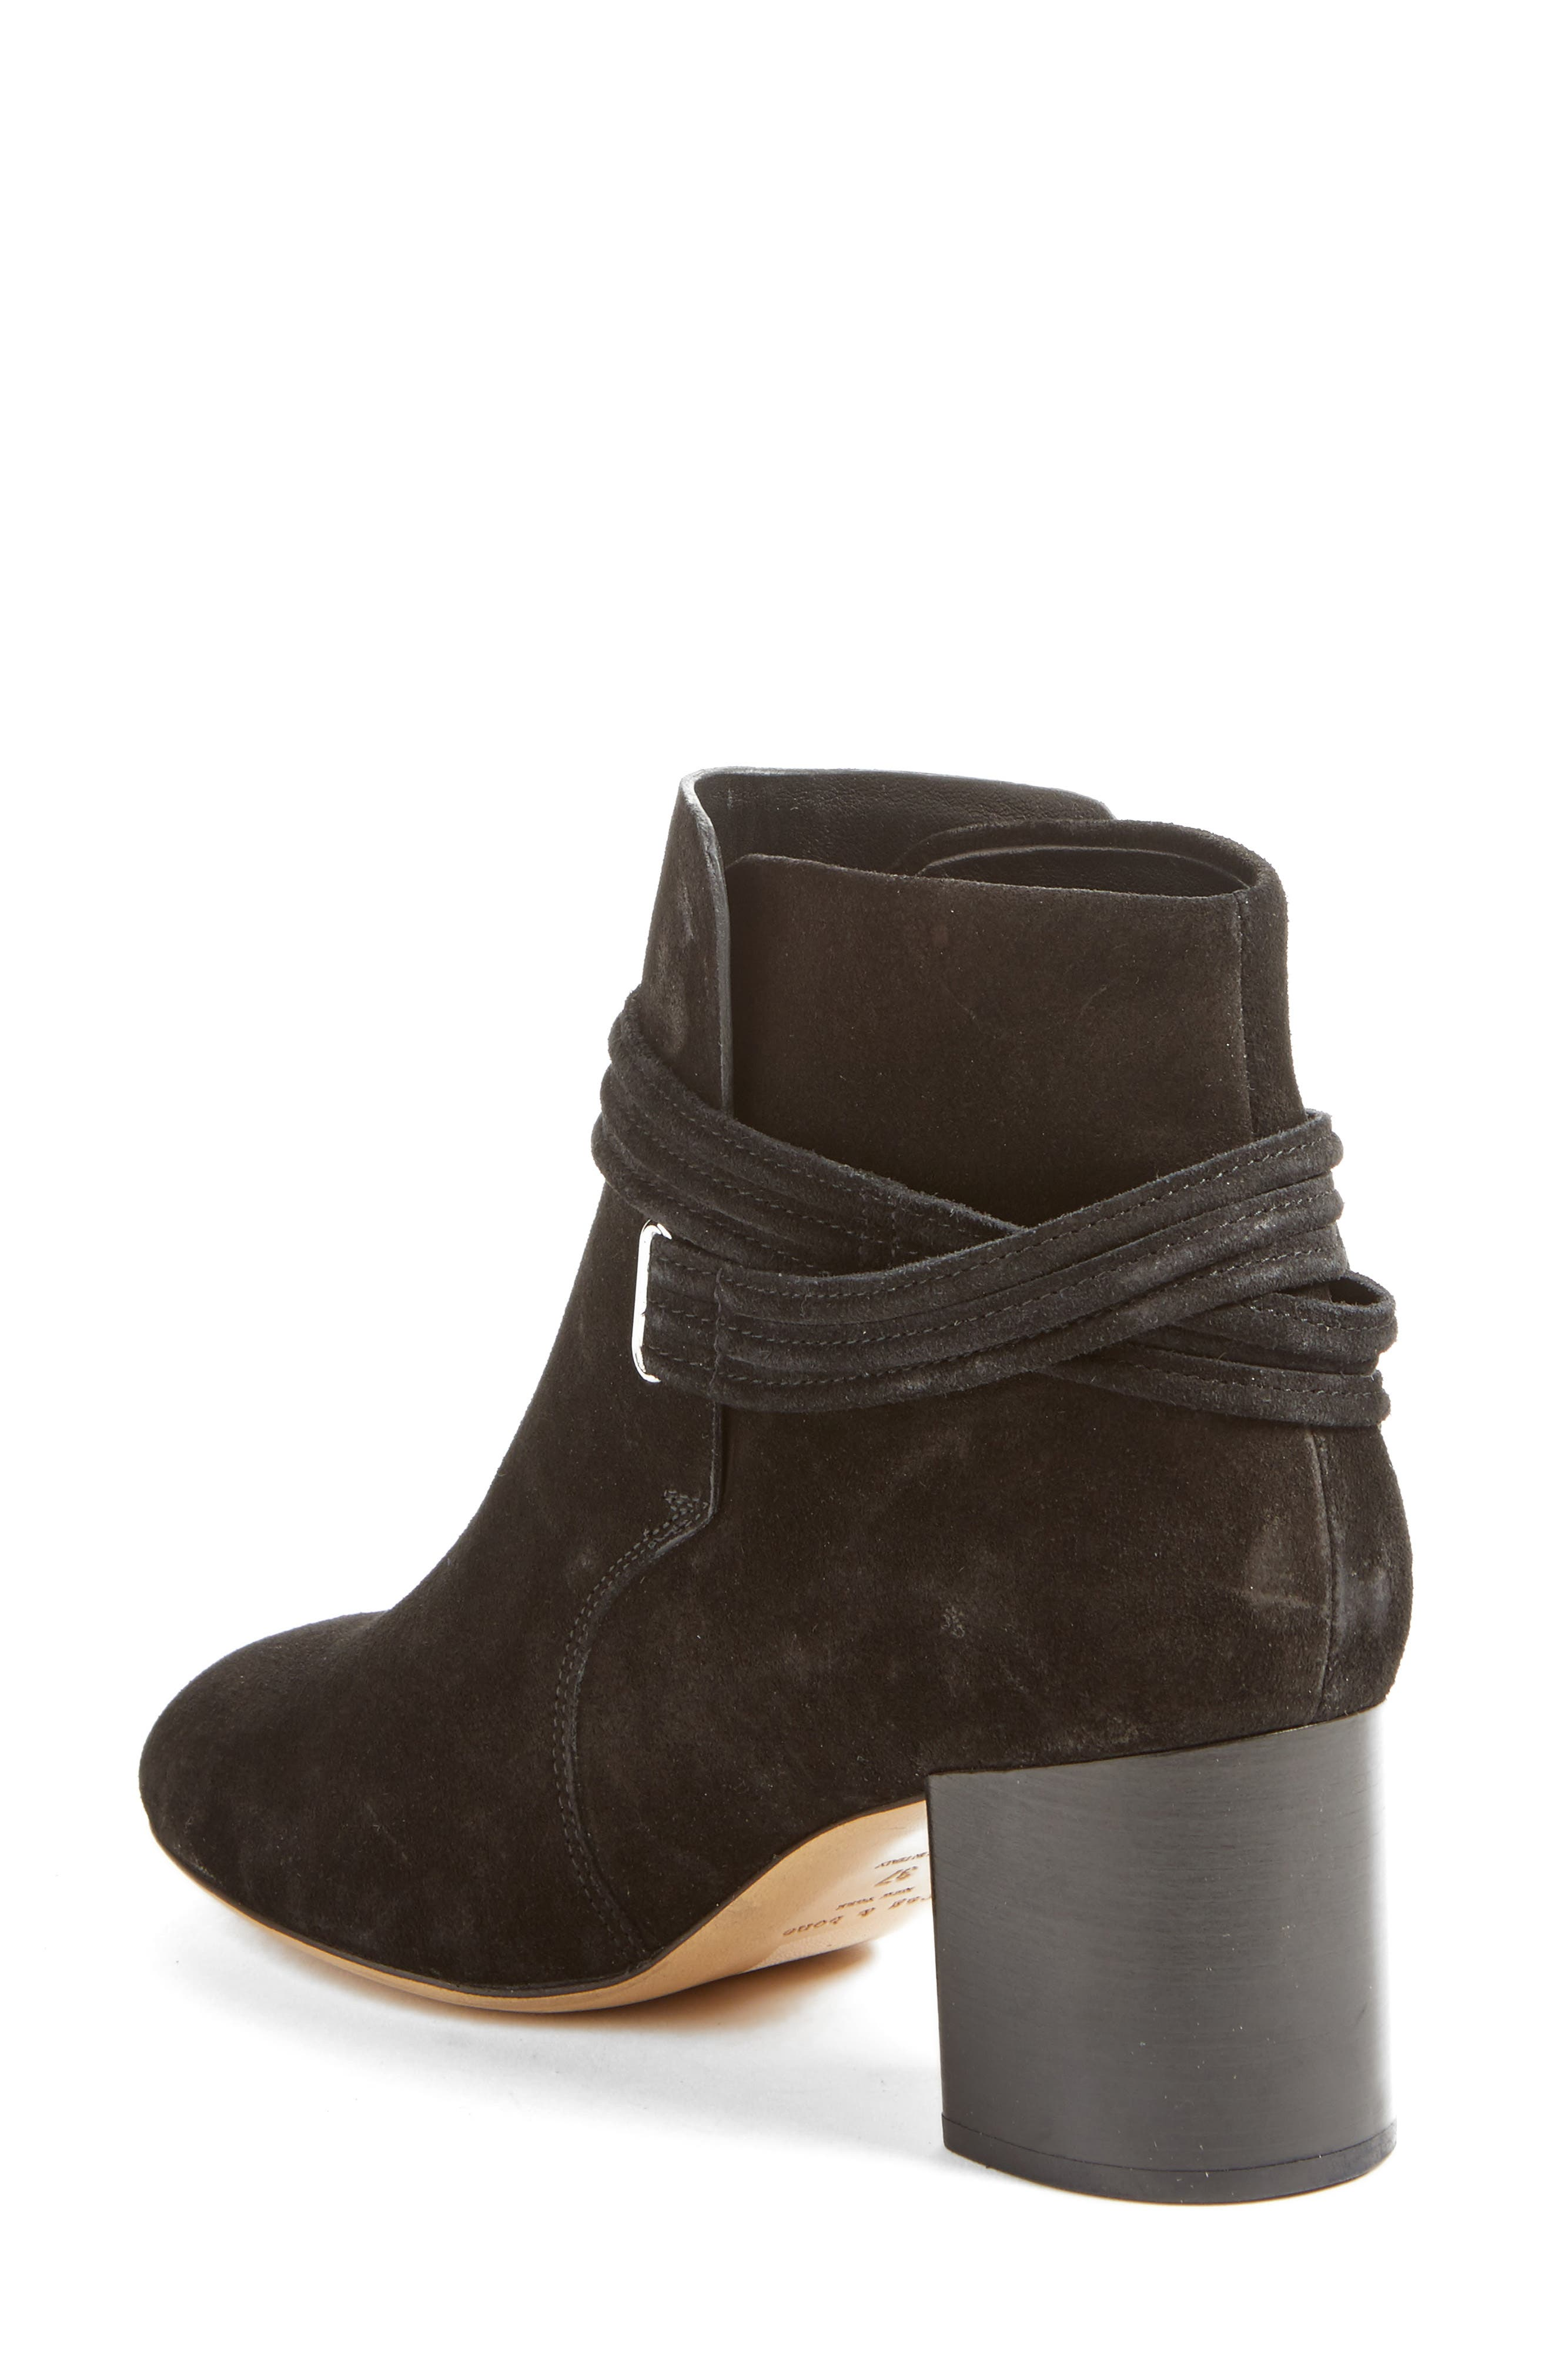 Dalia II Tie-Strap Bootie,                             Alternate thumbnail 2, color,                             008